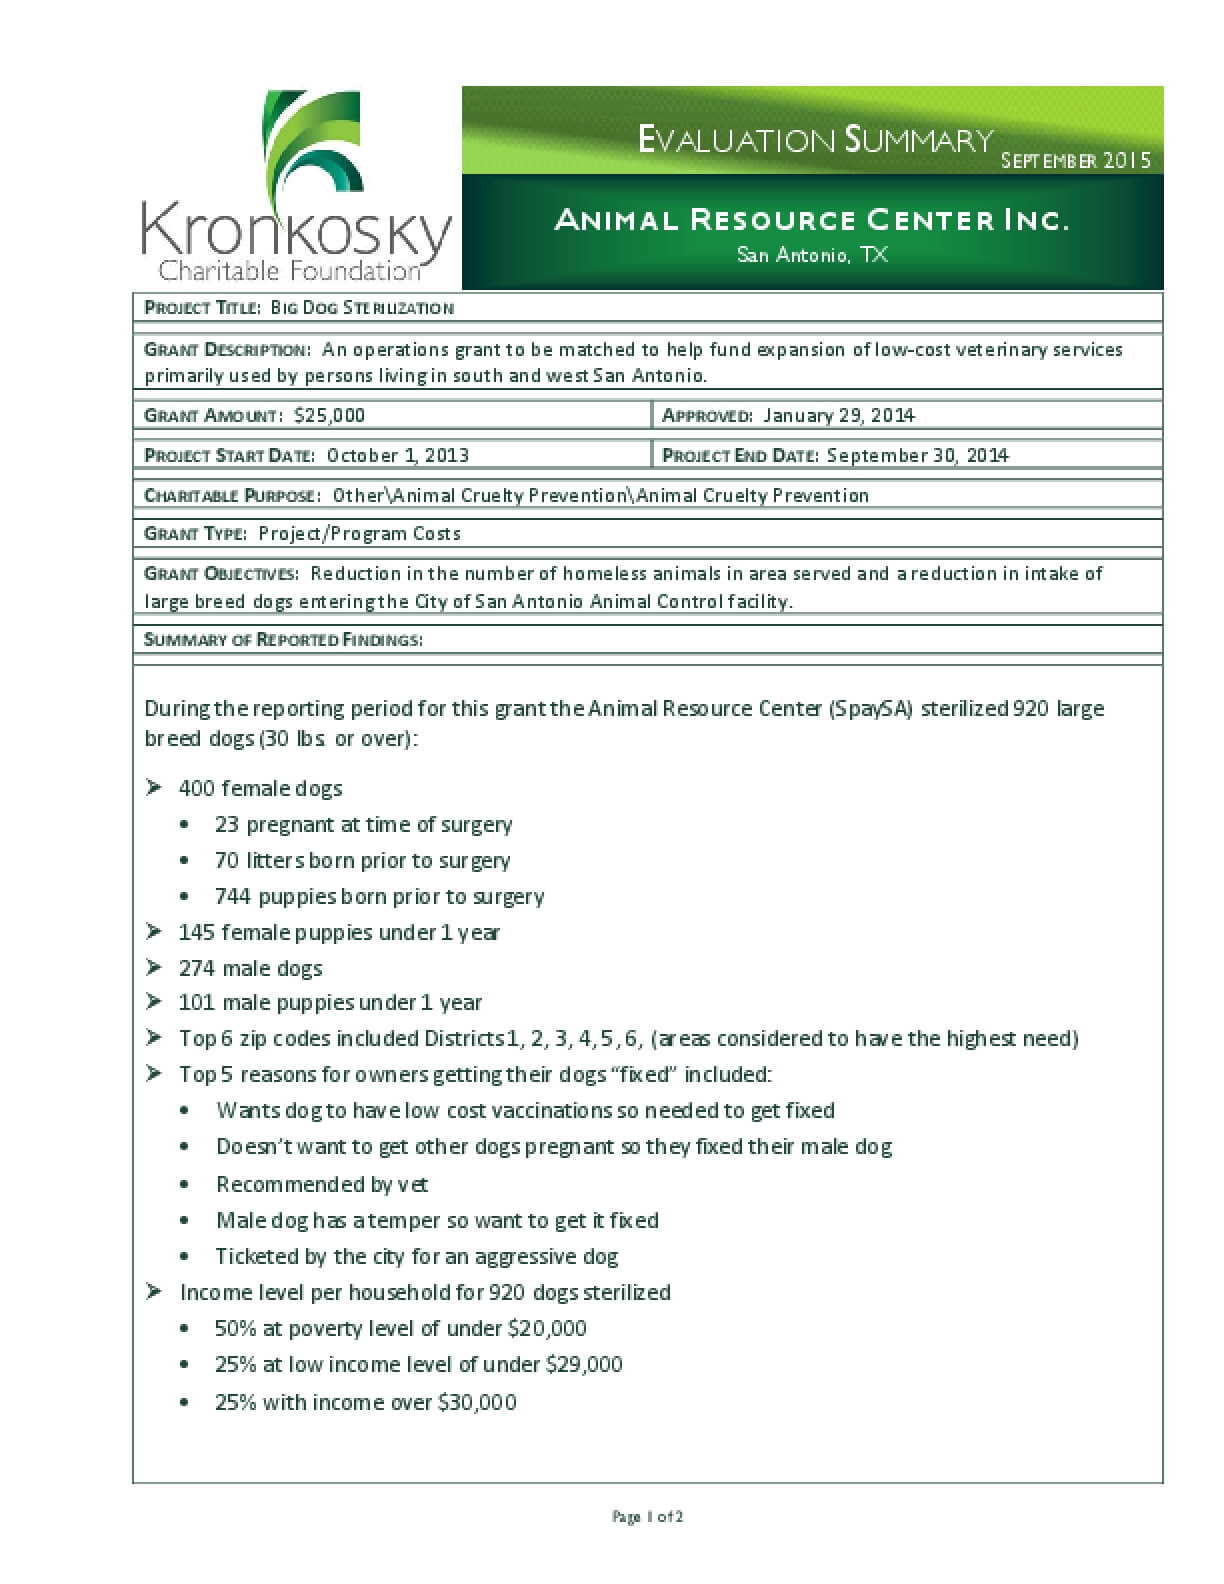 Animal Resource Center, Inc. Evaluation Summary